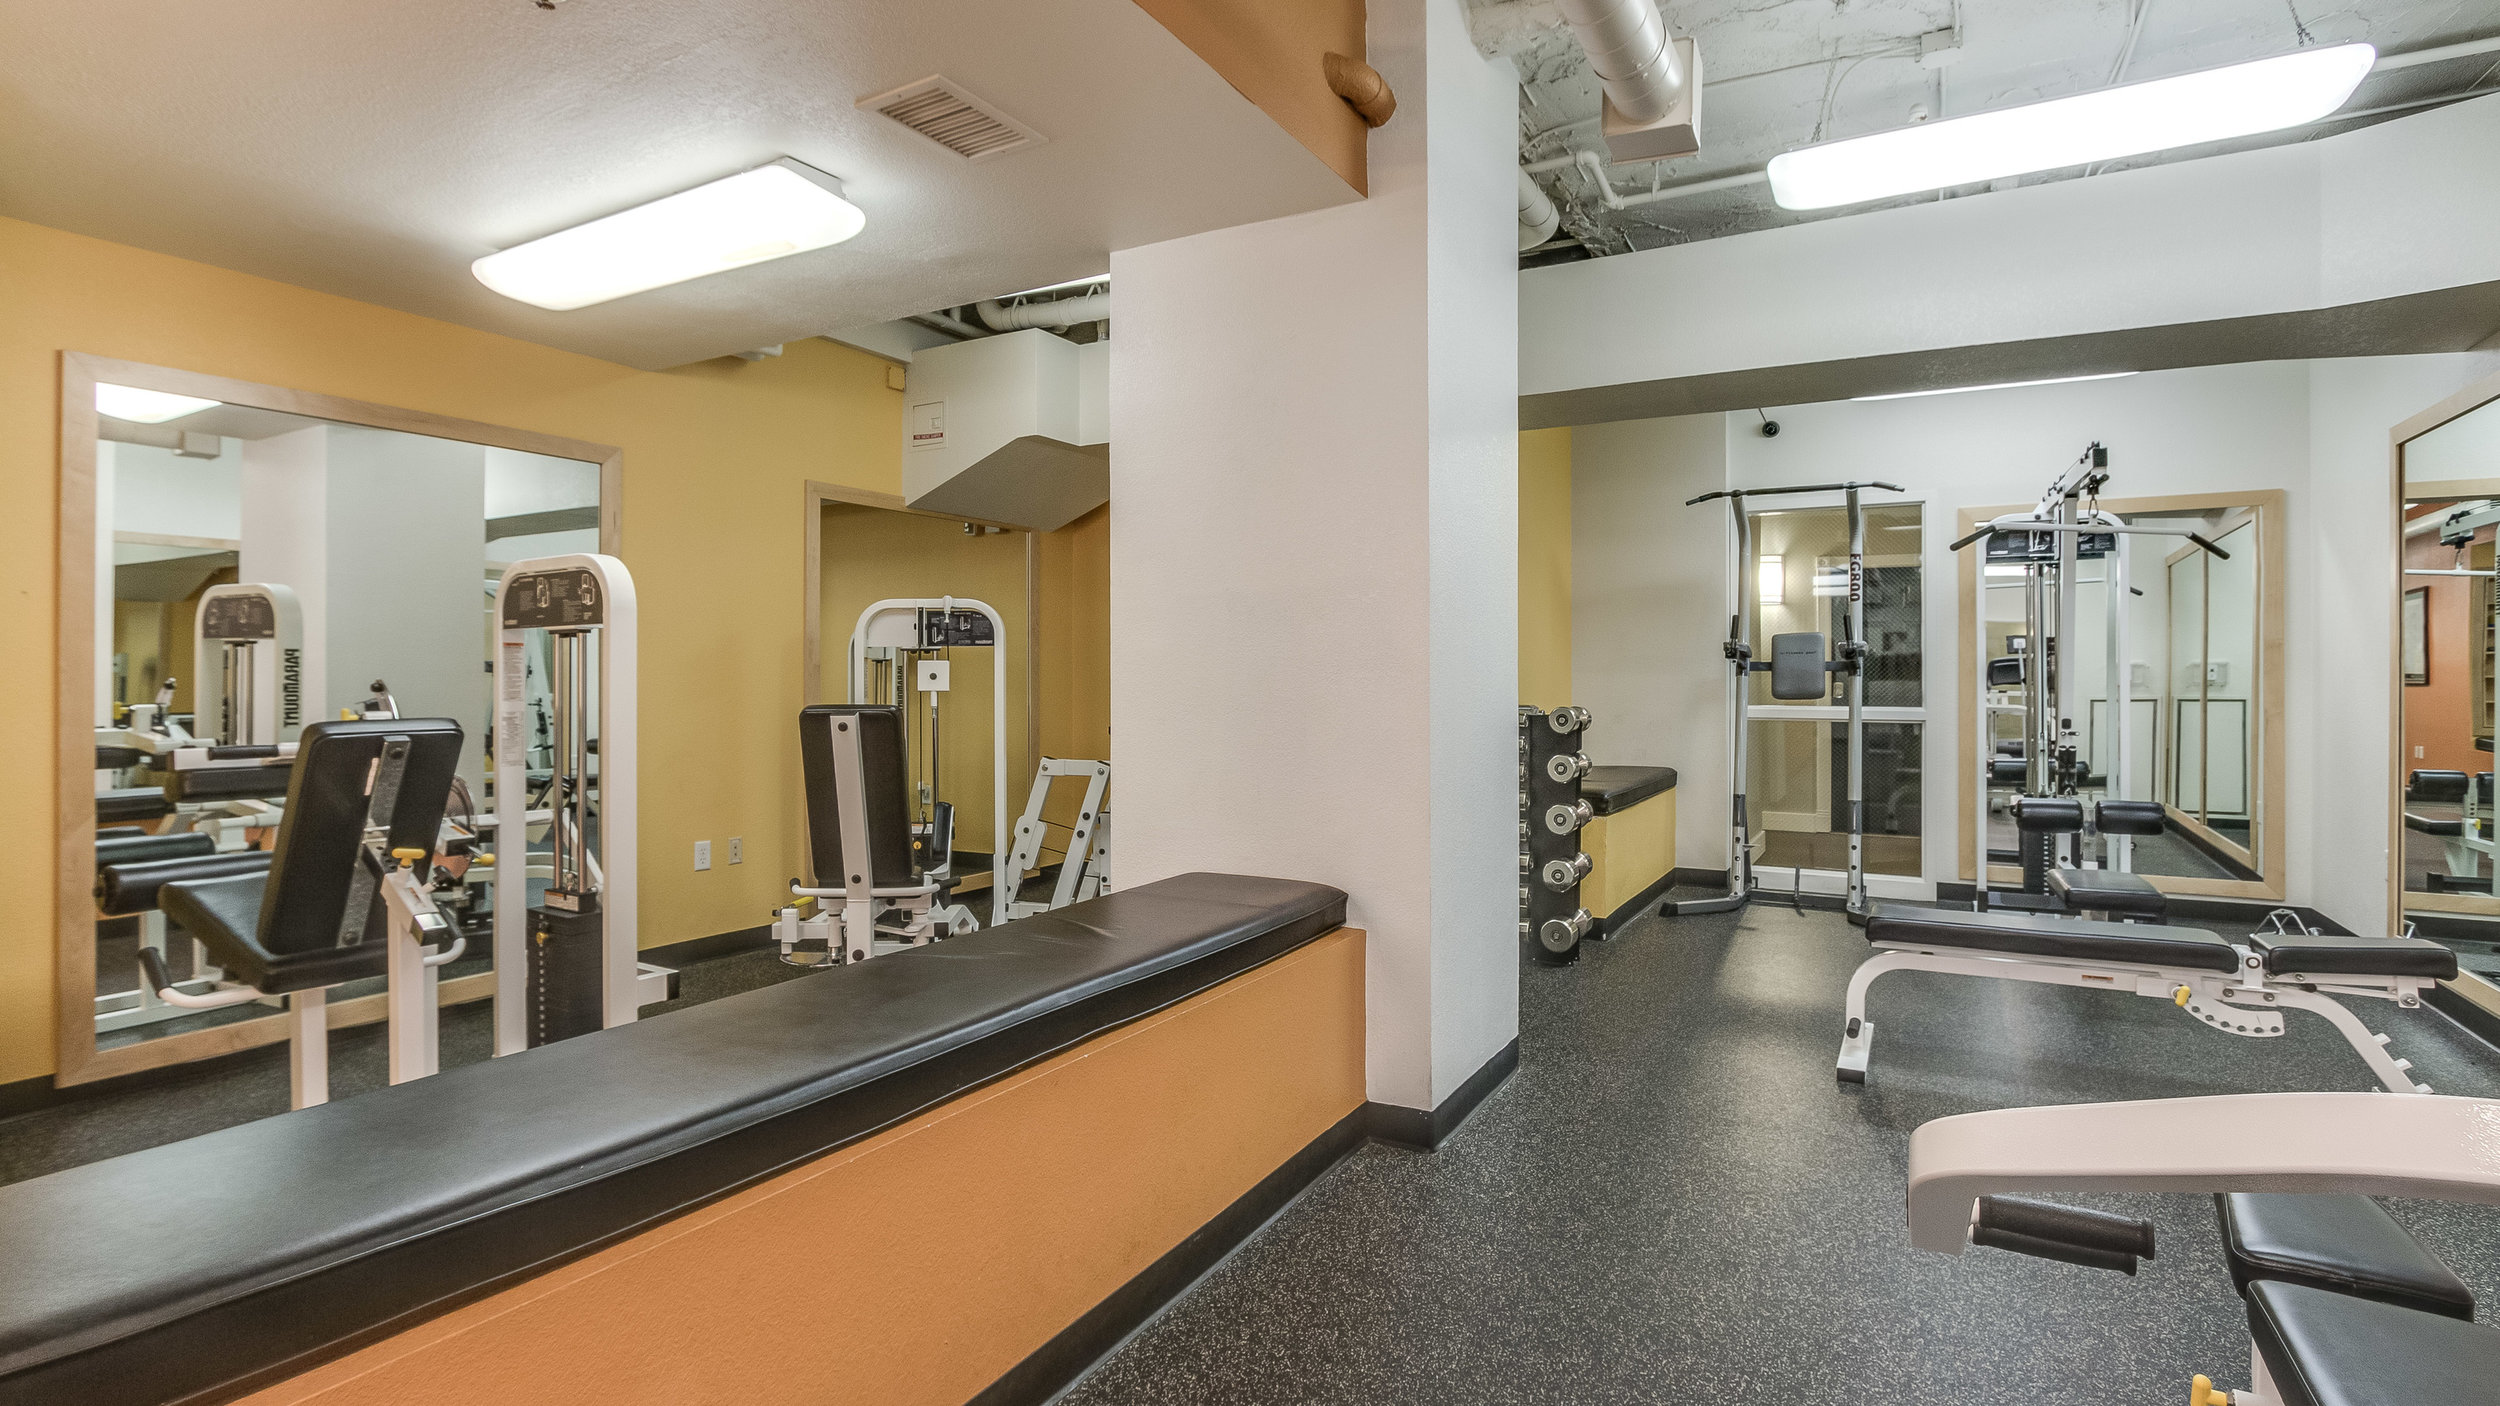 24 444 17th St. #1008 (23)Work Out Room.jpg